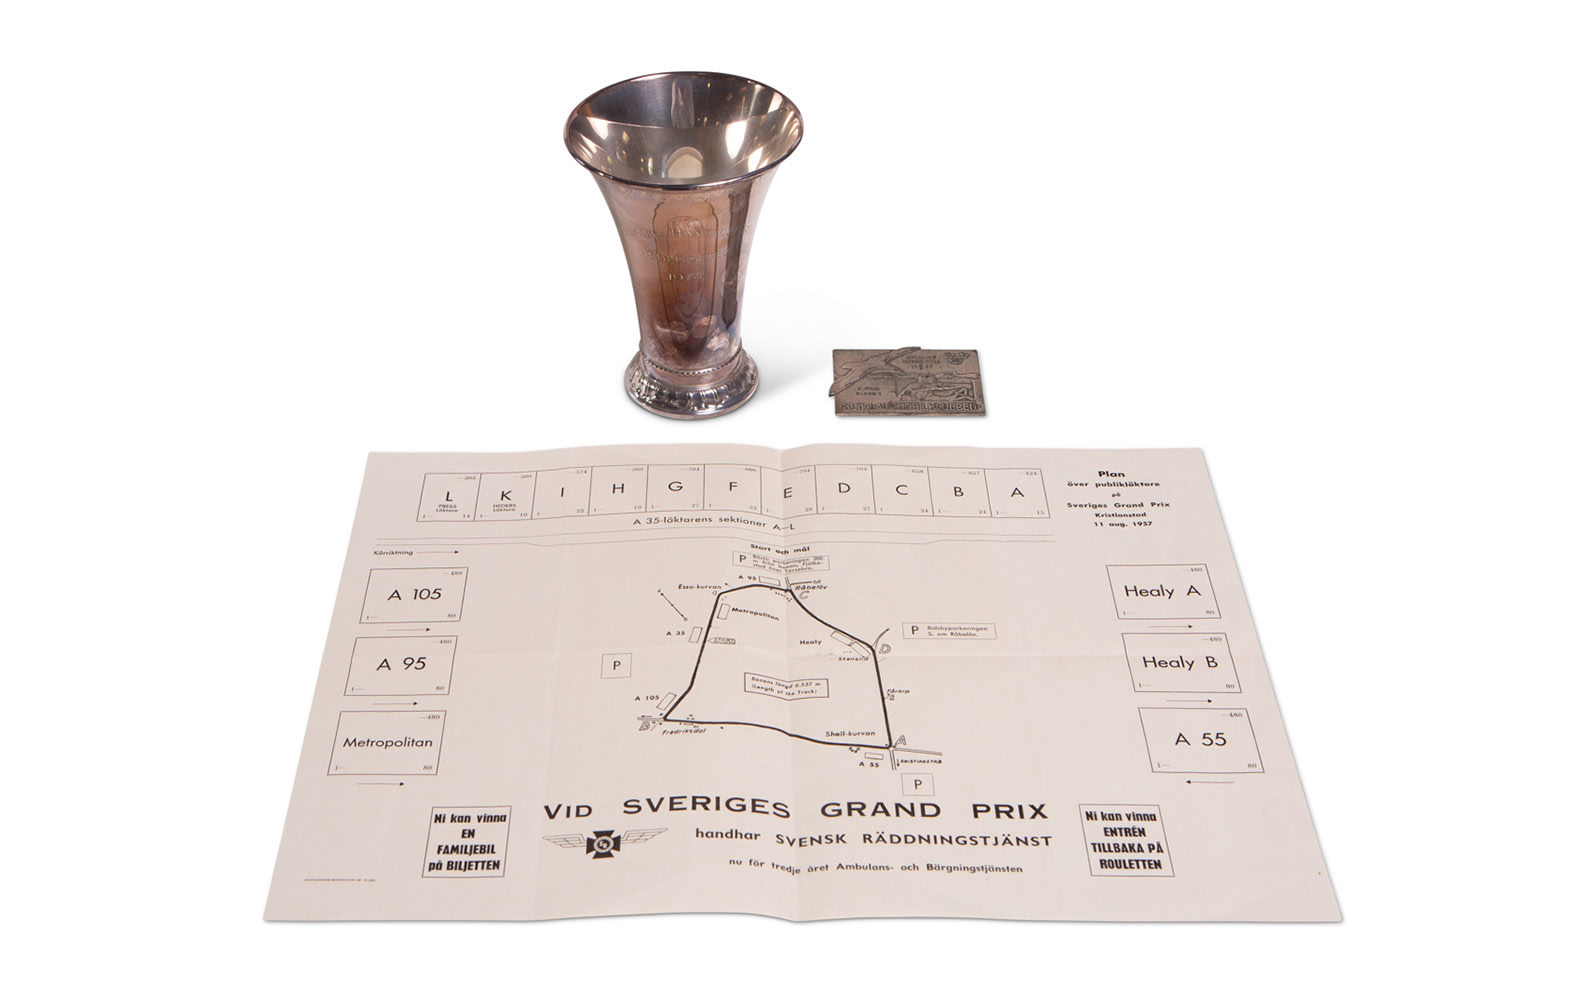 1957 Swedish Grand Prix Trophy, Plaque, and Course Map